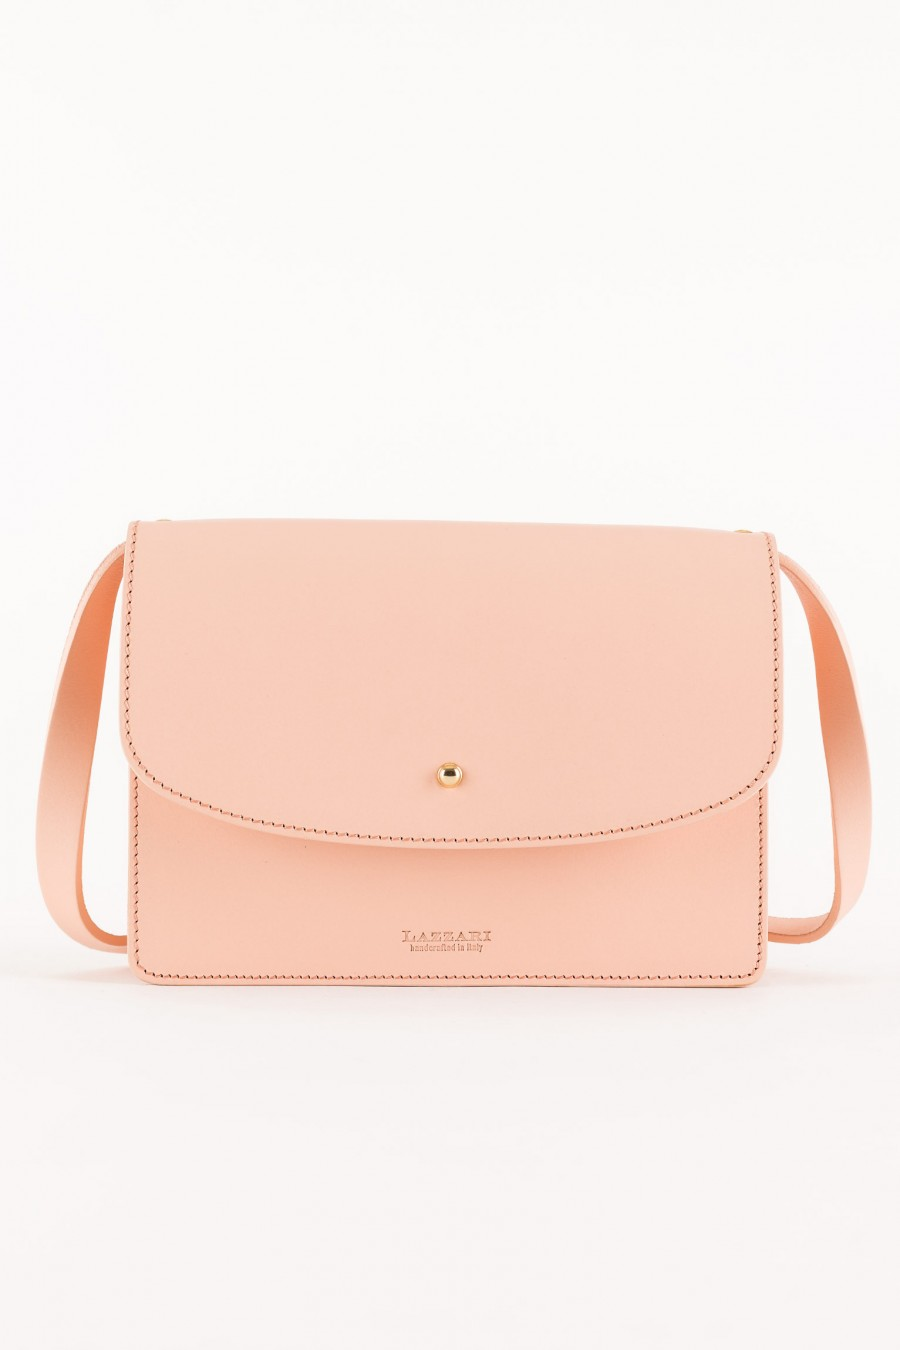 Baby pink leather bag